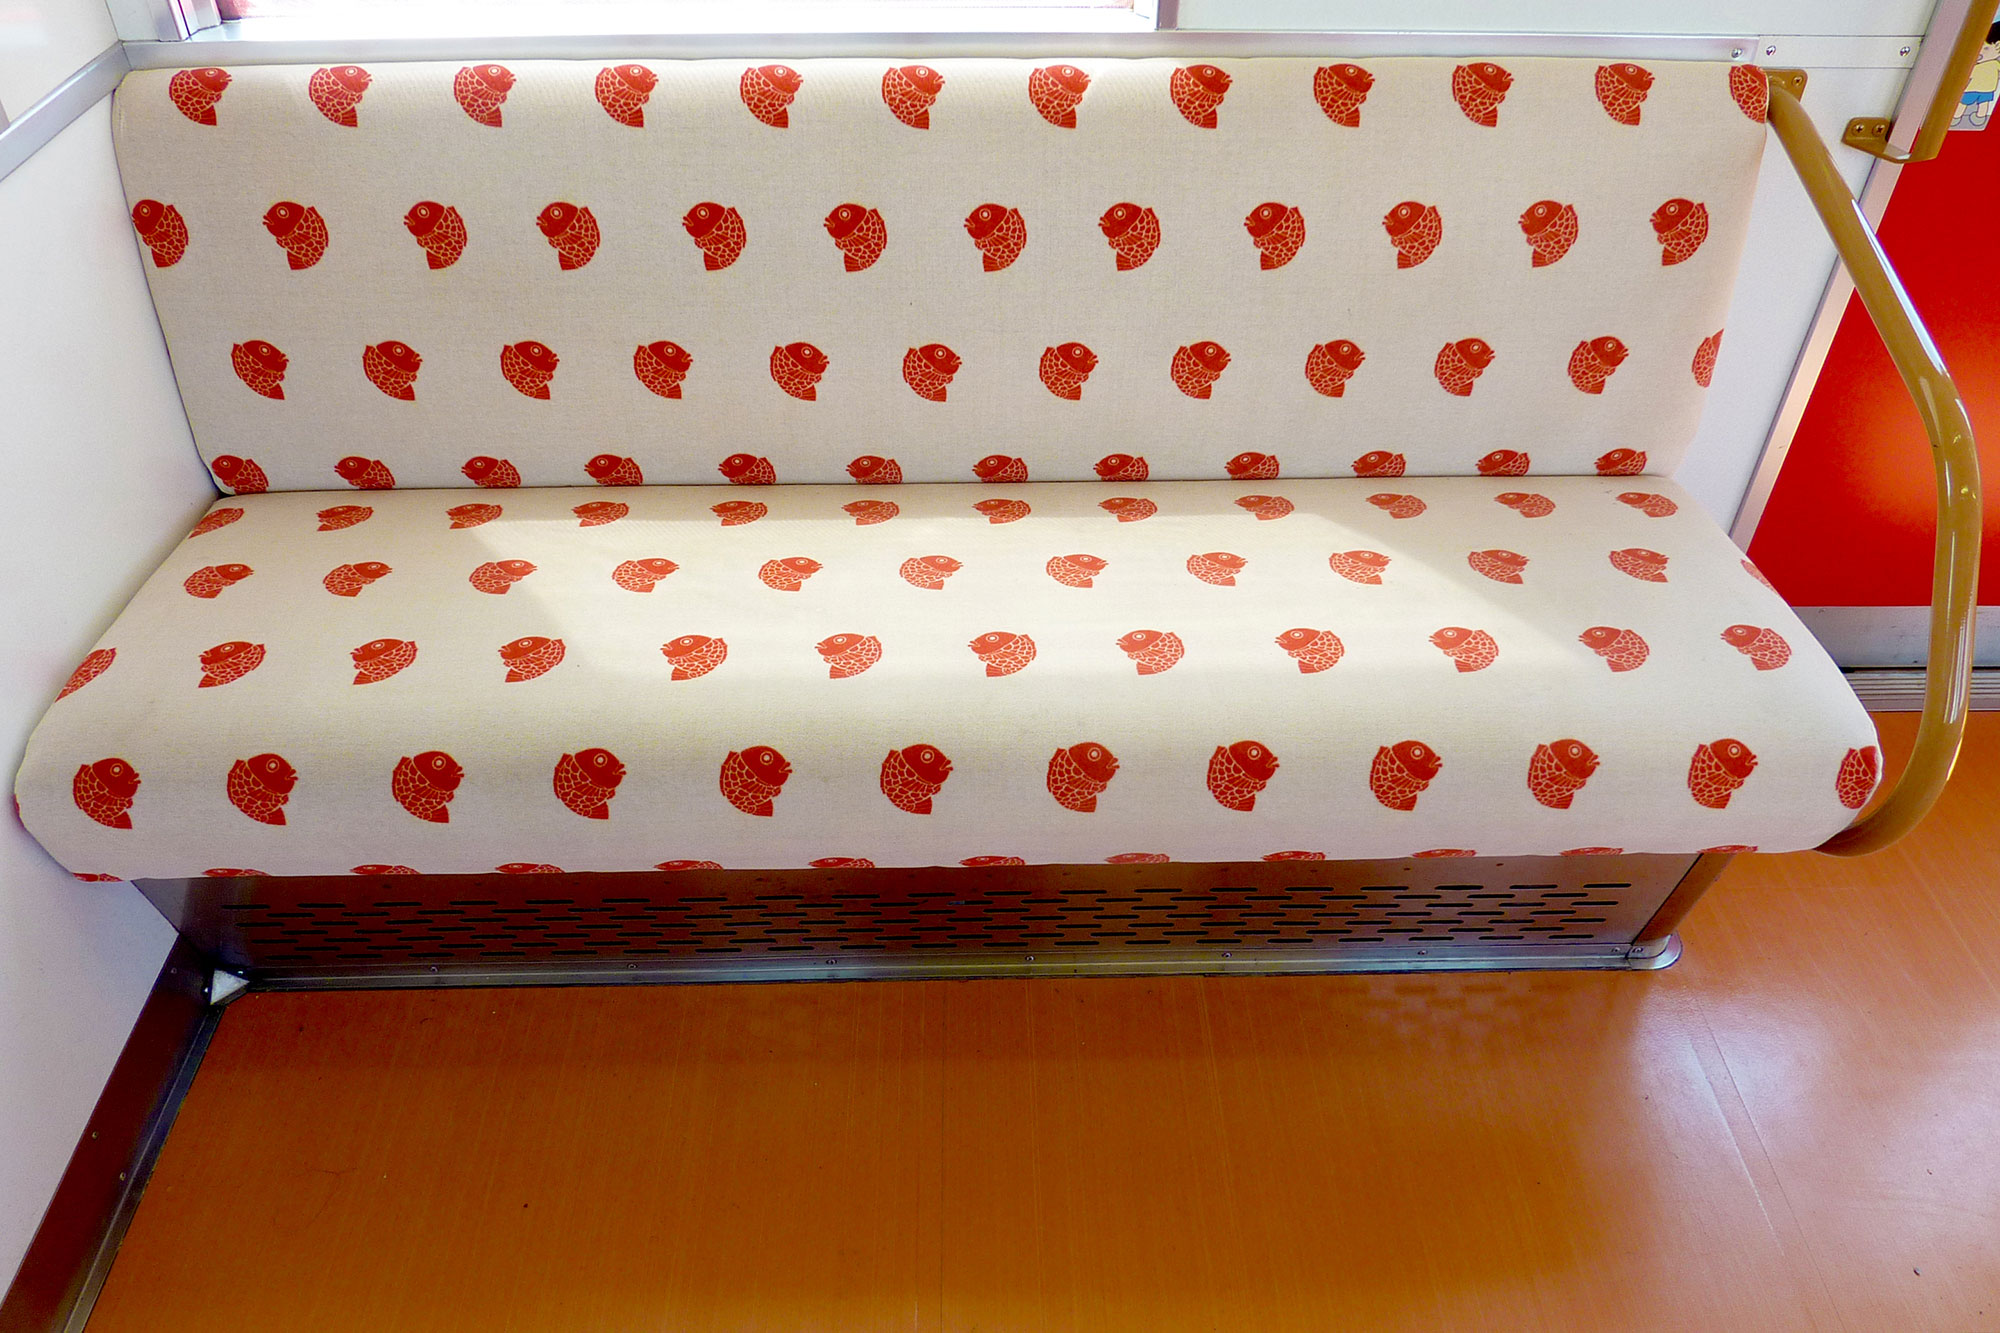 The pattern of the seat is the sea breamの写真